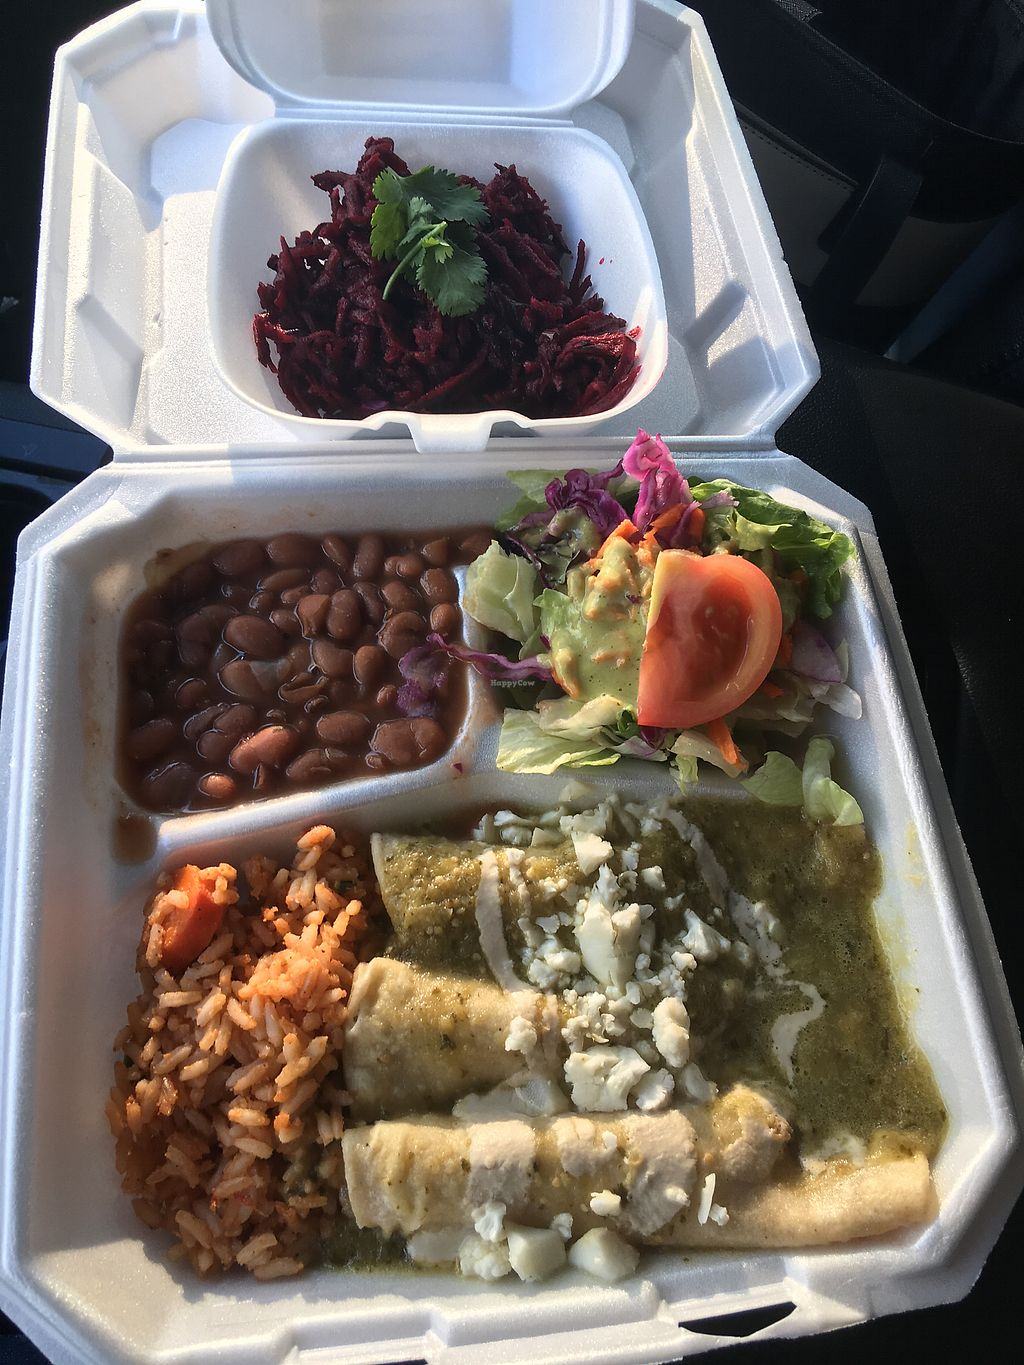 "Photo of Viva Vegeria  by <a href=""/members/profile/JenniferJames"">JenniferJames</a> <br/>Enchiladas verde (with rice, beans, and salad) and shredded beet salad <br/> September 9, 2017  - <a href='/contact/abuse/image/63637/302636'>Report</a>"